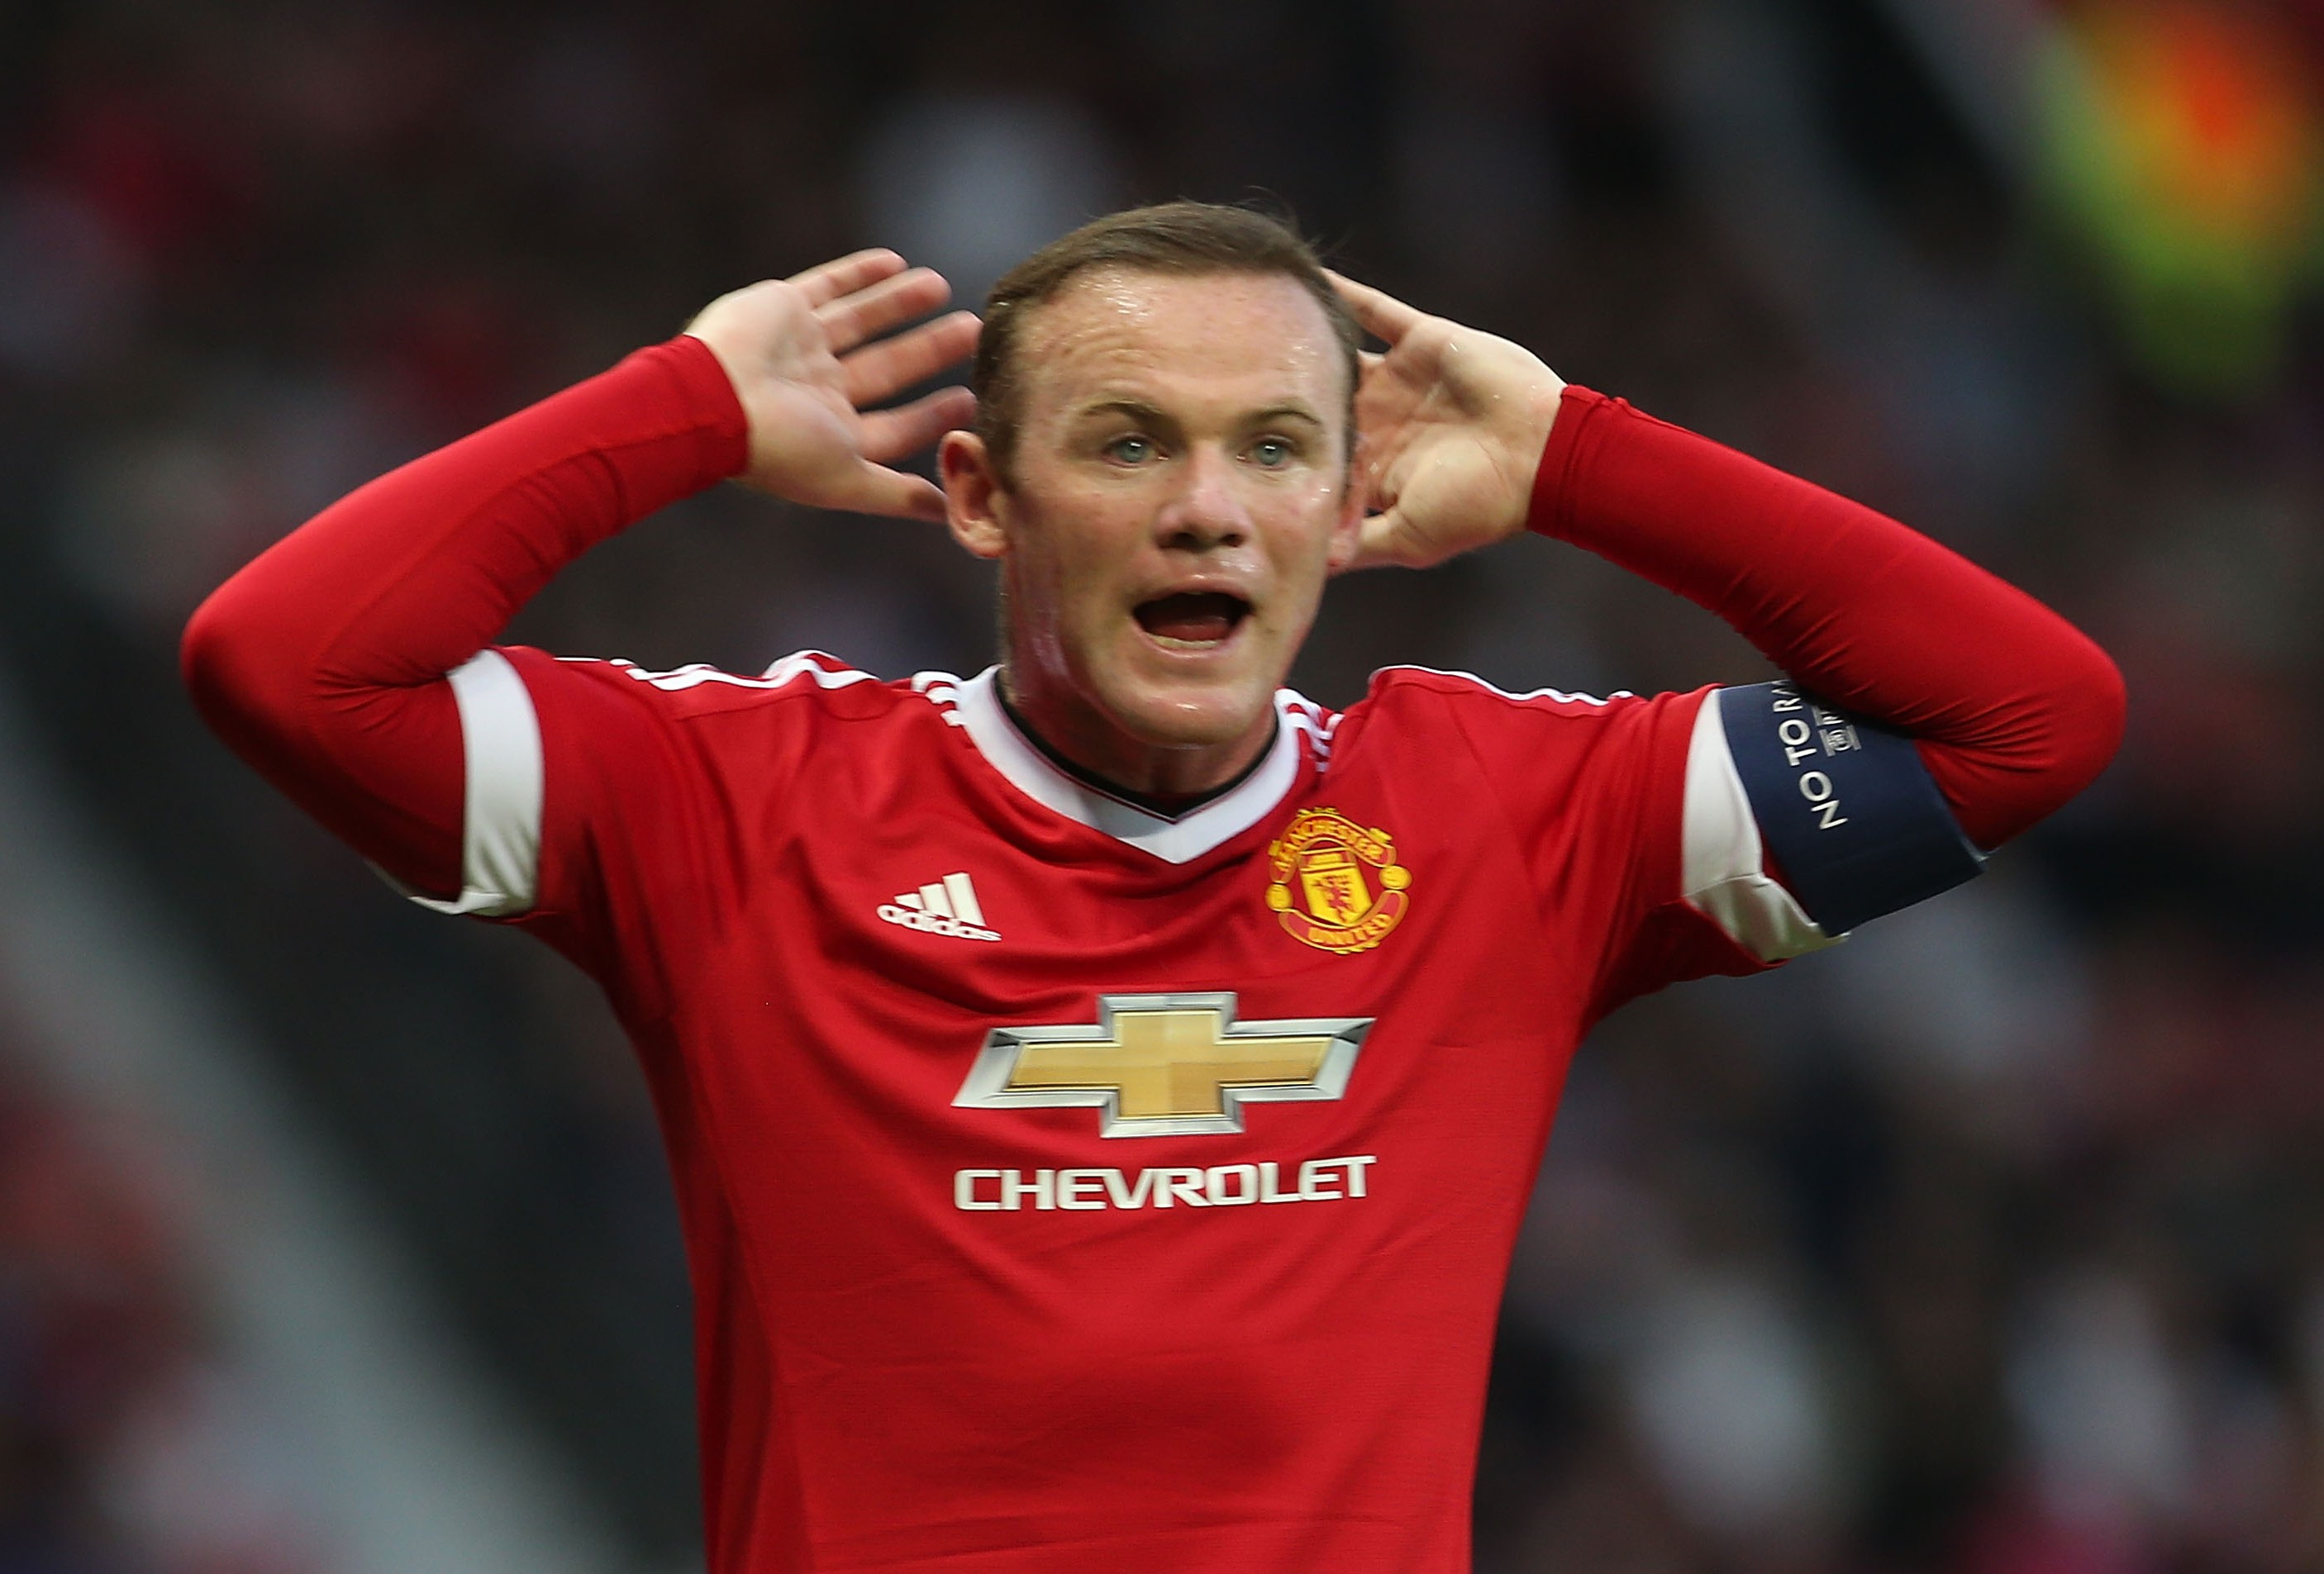 MANCHESTER, ENGLAND - AUGUST 18: Wayne Rooney of Manchester United in action during the UEFA Champions League play-off first leg match between Manchester United and Club Brugge at Old Trafford on August 18, 2015 in Manchester, England. (Photo by Matthew Peters/Man Utd via Getty Images)